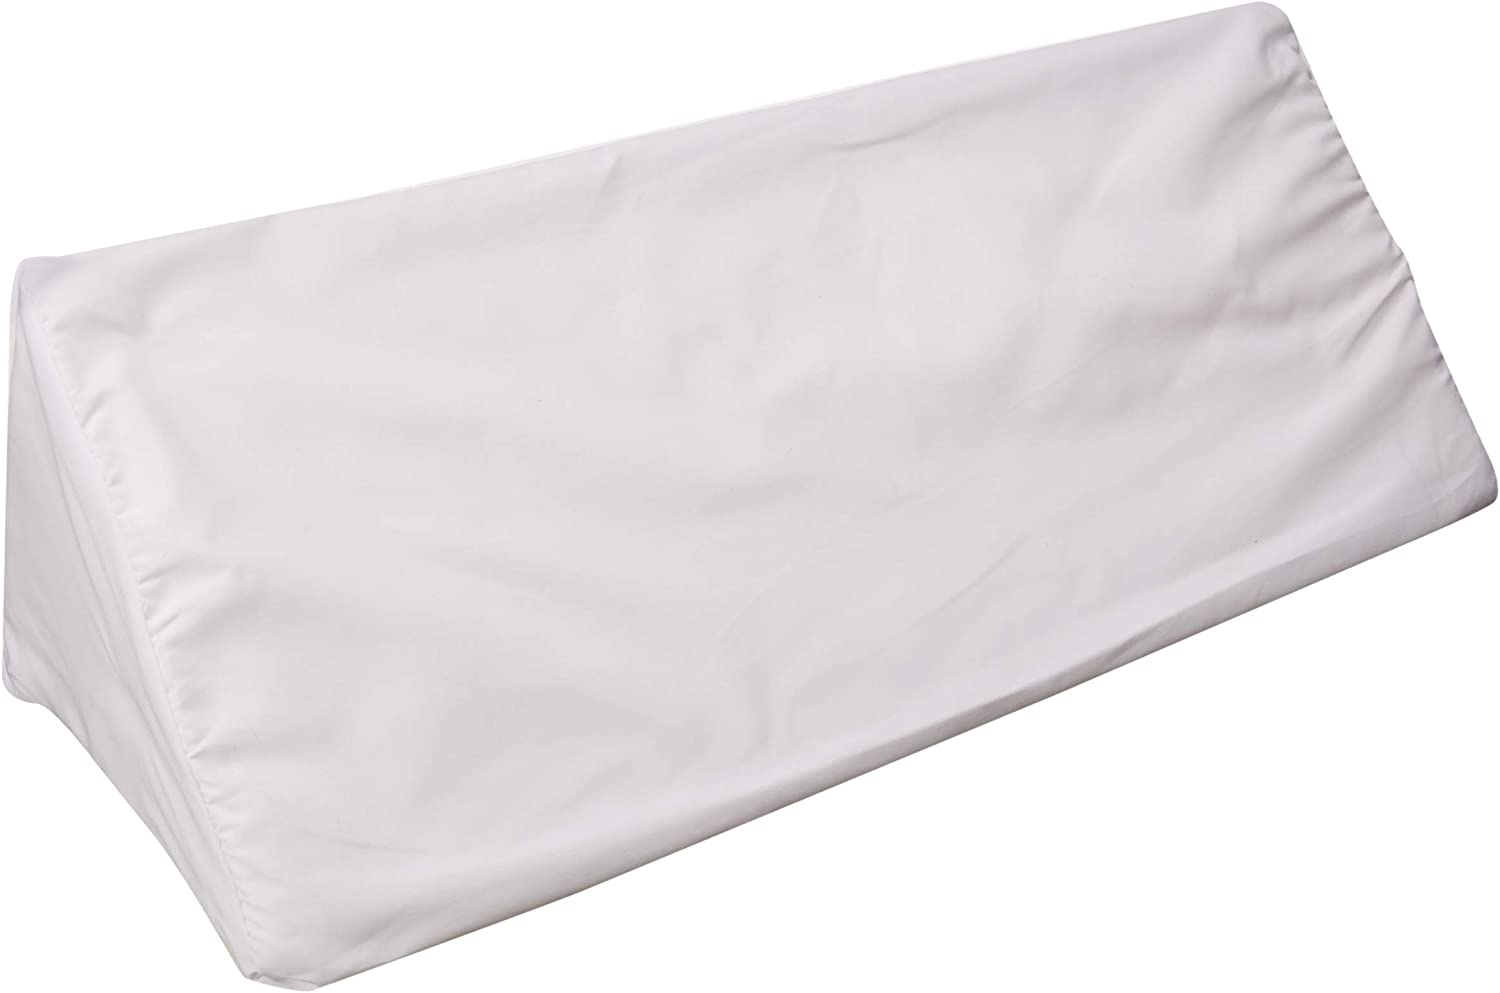 Hermell Foam Bed Wedge Pillow for Side Sleepers (White): Health & Personal Care